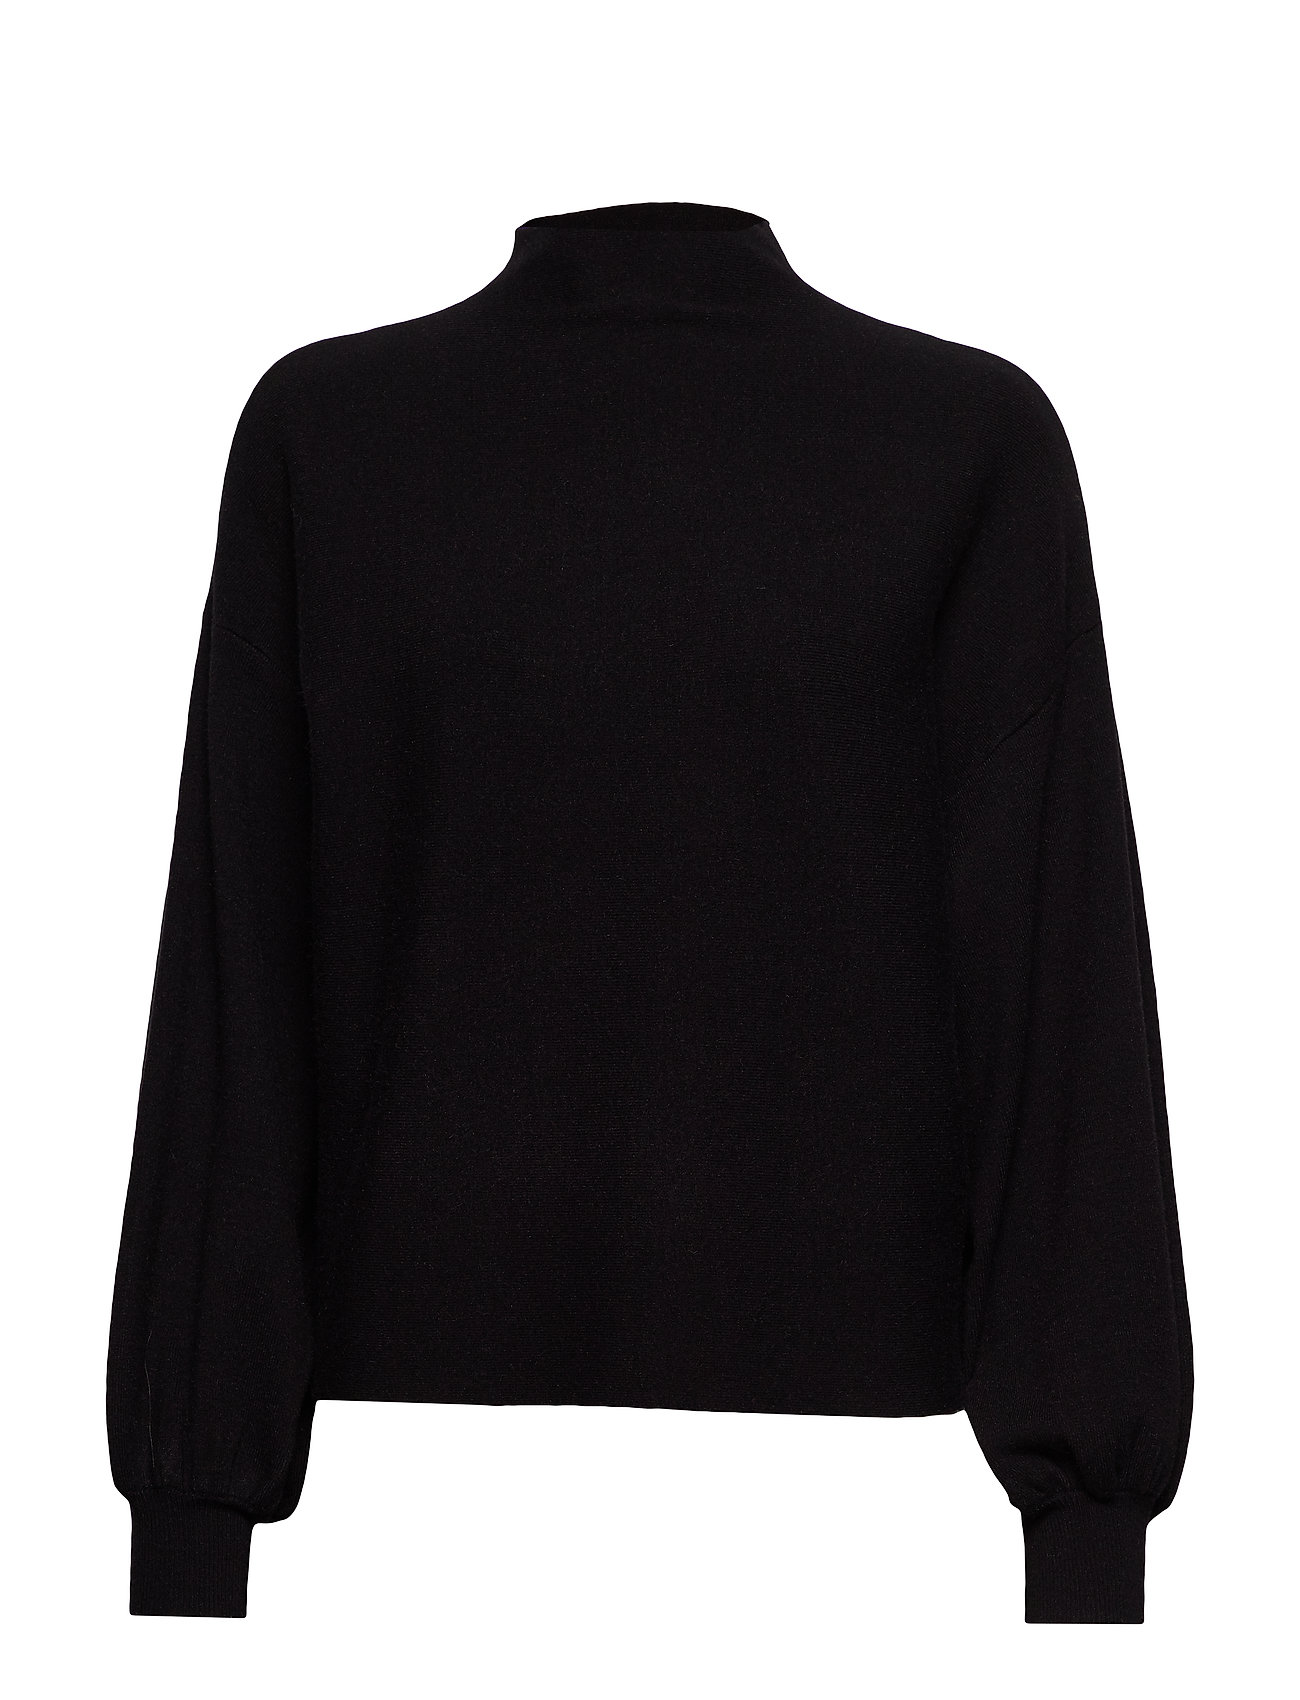 Vero Moda VMNANCY 7/8 BALLOON FULLNECK BLOUSE - BLACK